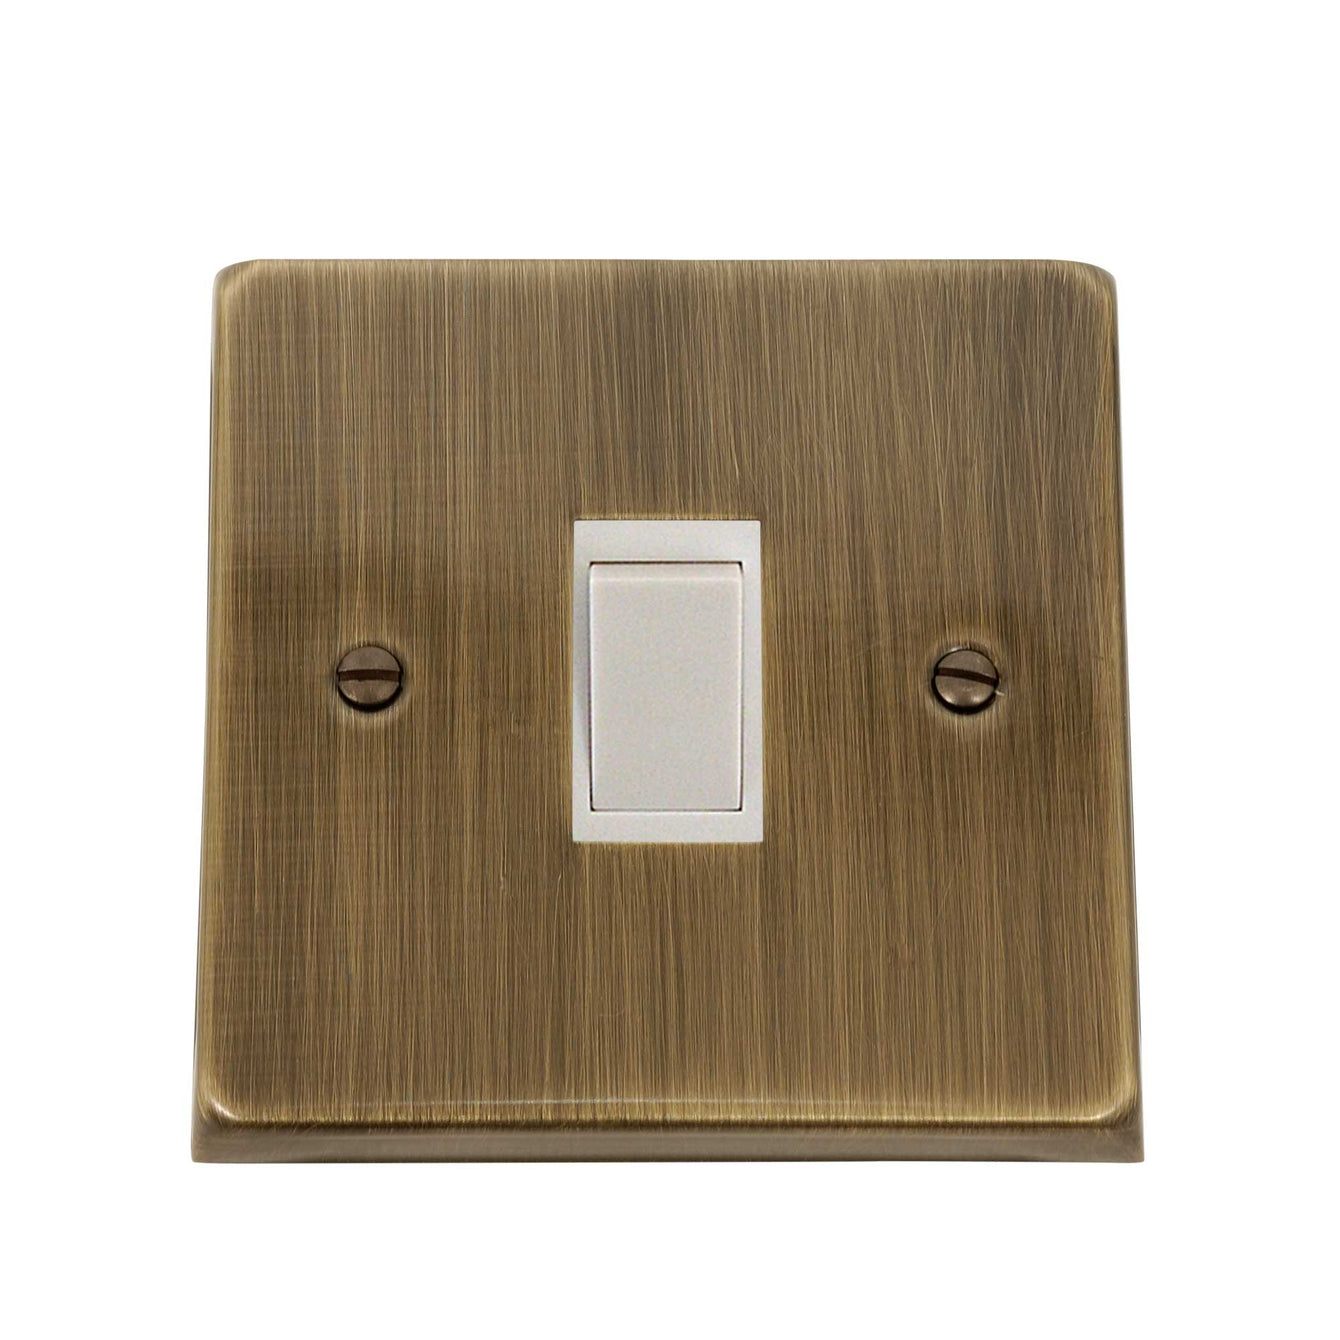 ElekTek Light Switch Conversion Cover Plate Single Victorian - Buy It Better Fusion Bronze